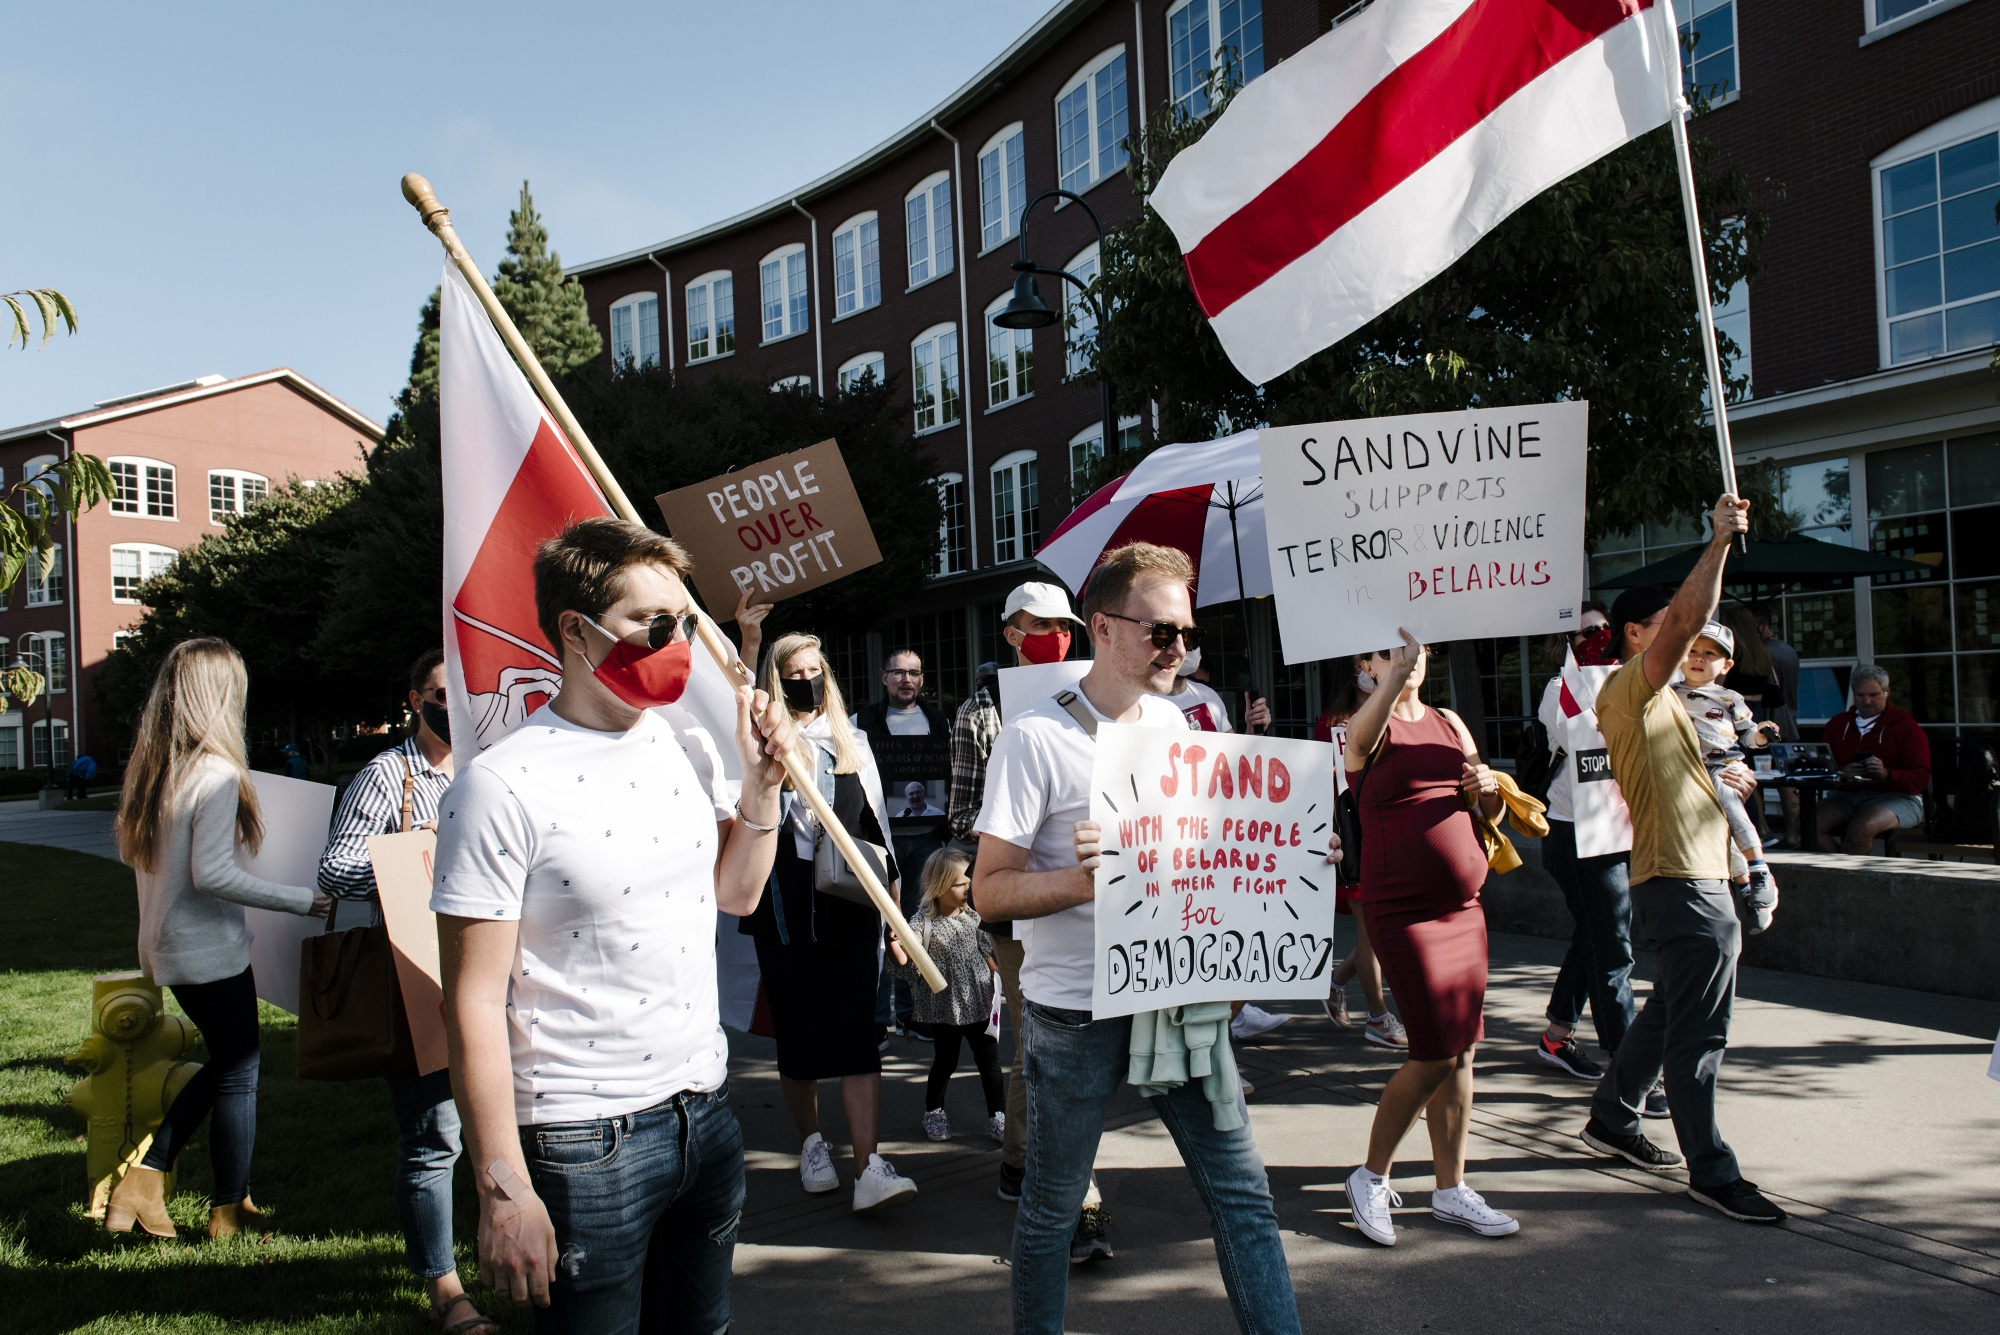 Demonstrators hold signs and wave Belarus flags during a protest outside Francisco Partners headquarters in San Francisco, California, onSept. 18.